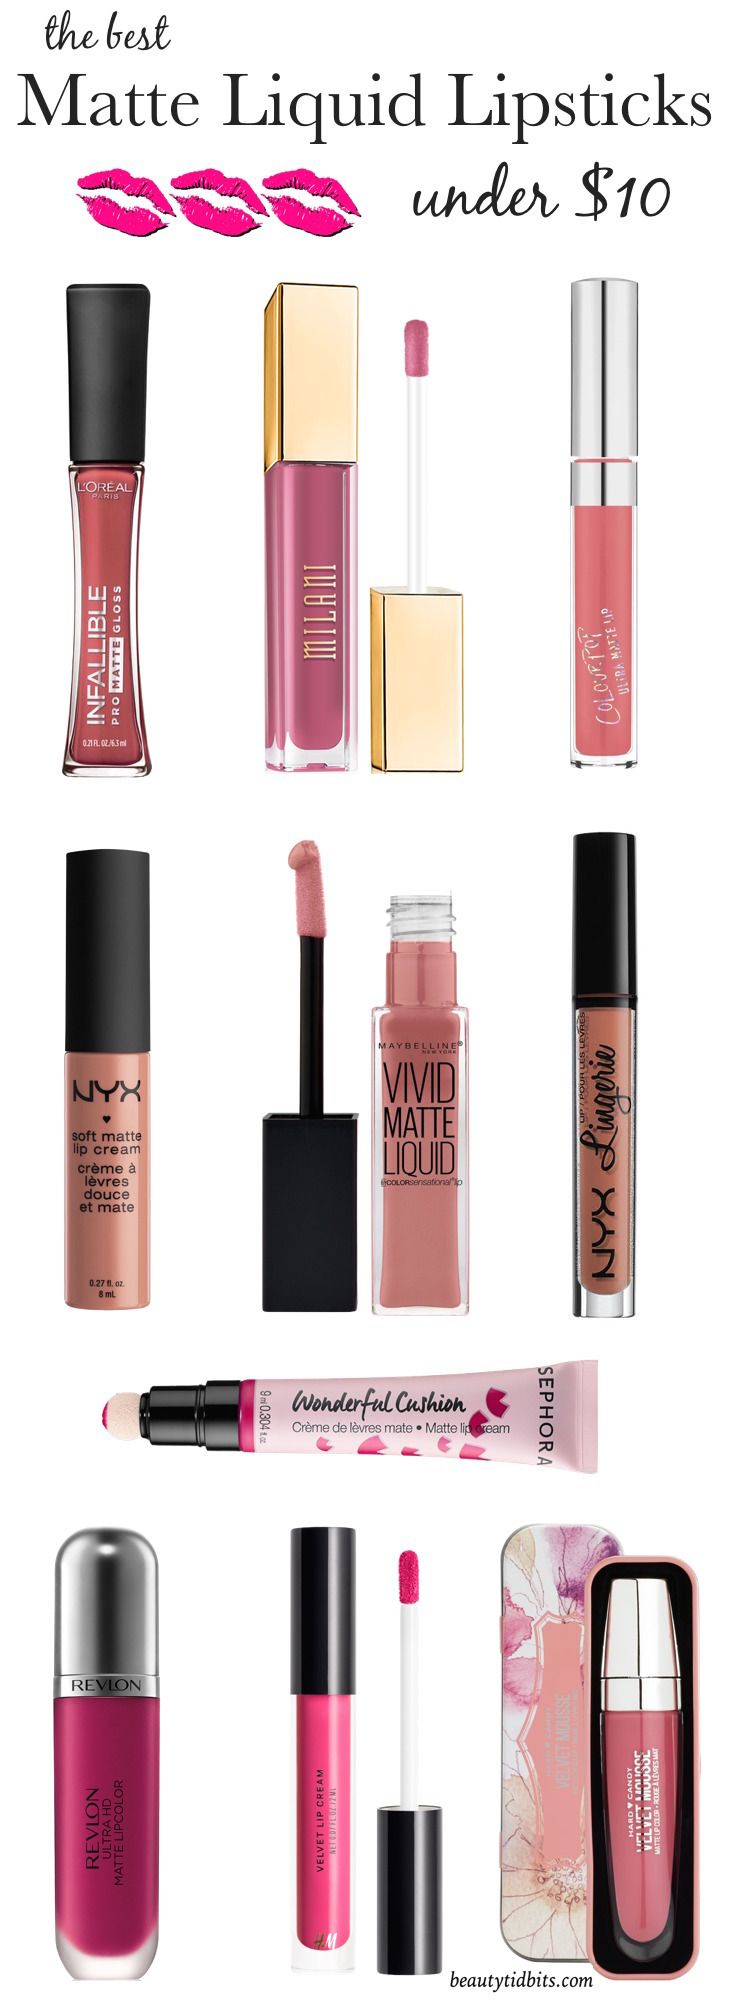 Best Matte Liquid Lipsticks (under $10) that are long-lasting and won't dry your lips! You NEED these! Click through to get the Ultimate list of drugstore liquid lipsticks you need right now!